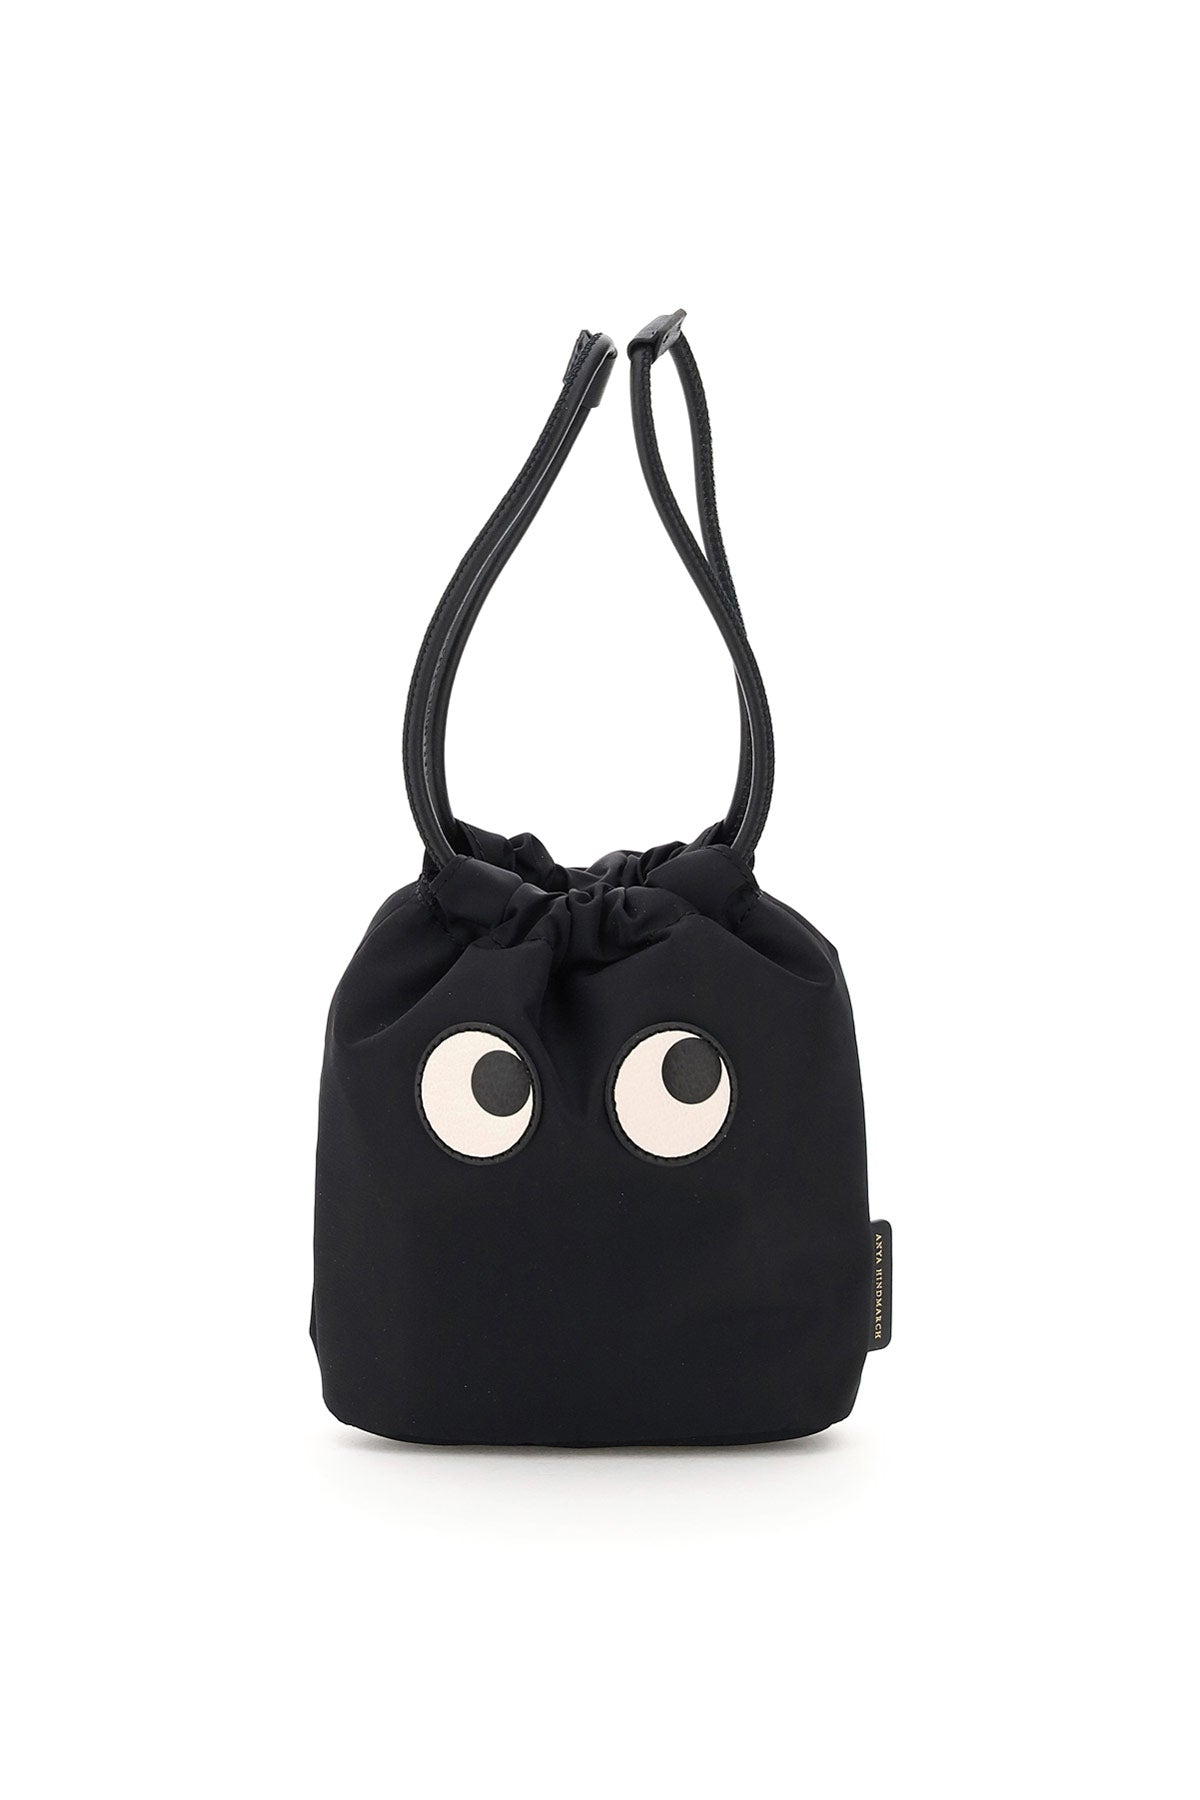 Anya Hindmarch ANYA HINDMARCH DRAWSTRING EYES POUCH